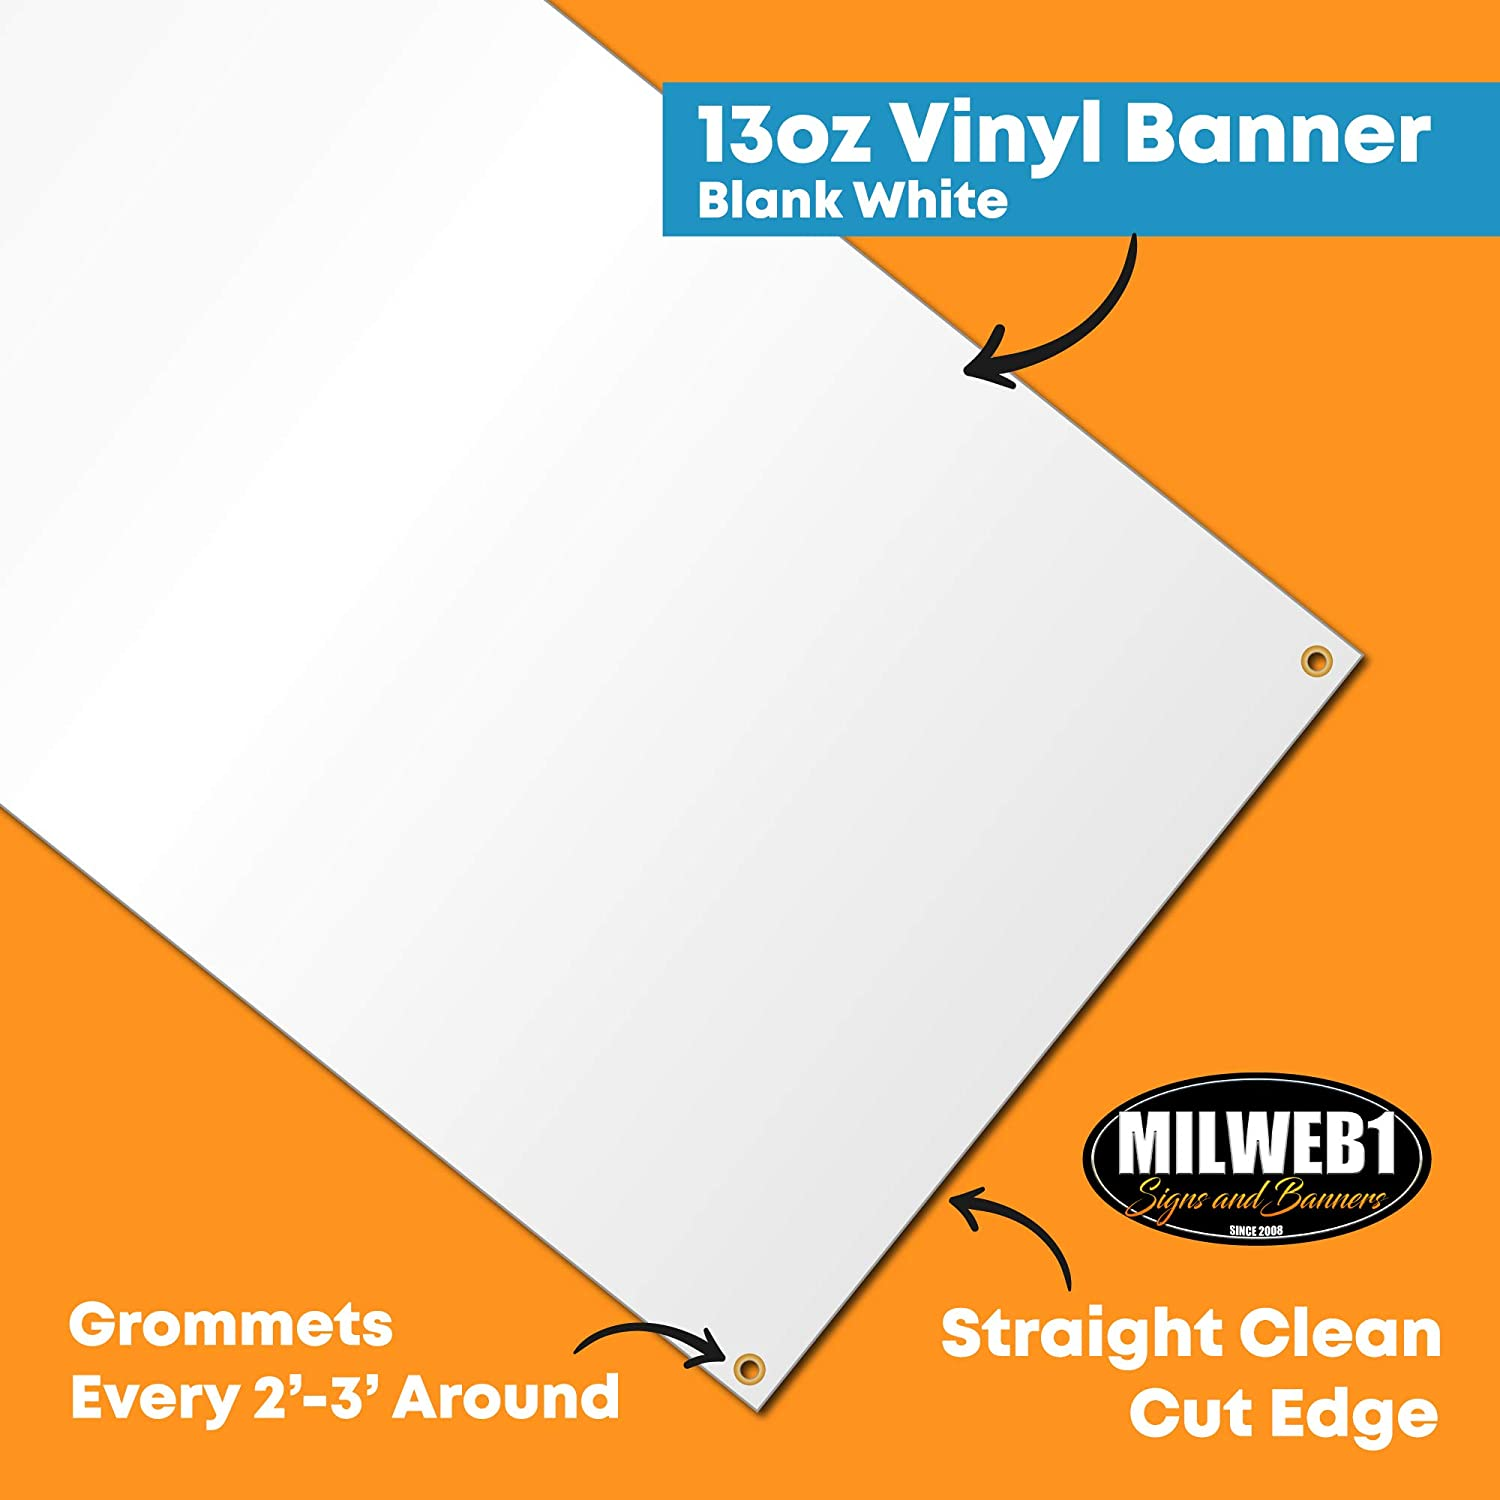 Blank White Vinyl Banner Sign with Grommets Milweb1 2x3